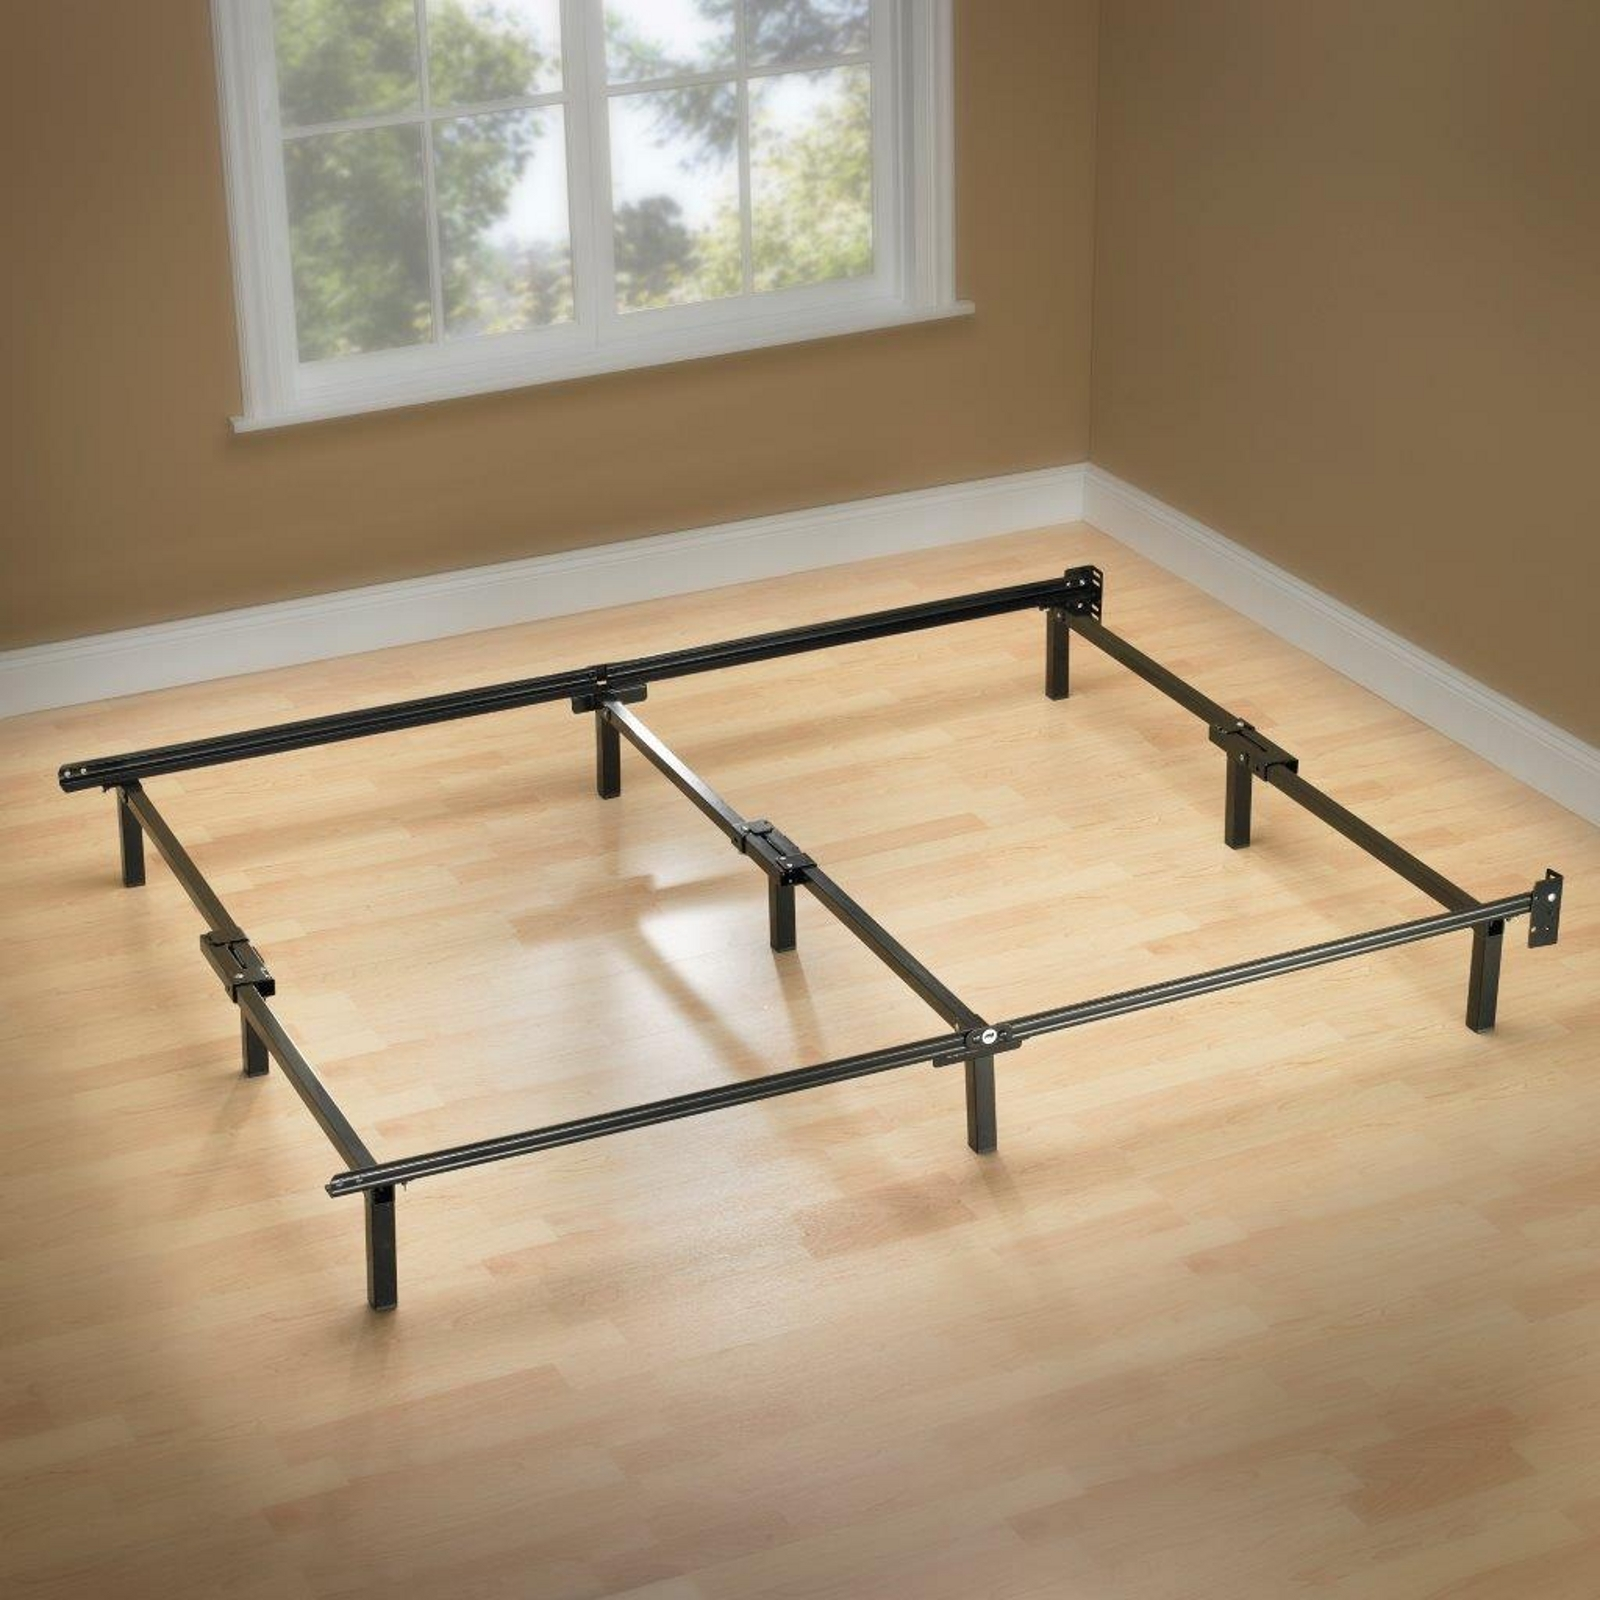 Sears Twin Bed Frame